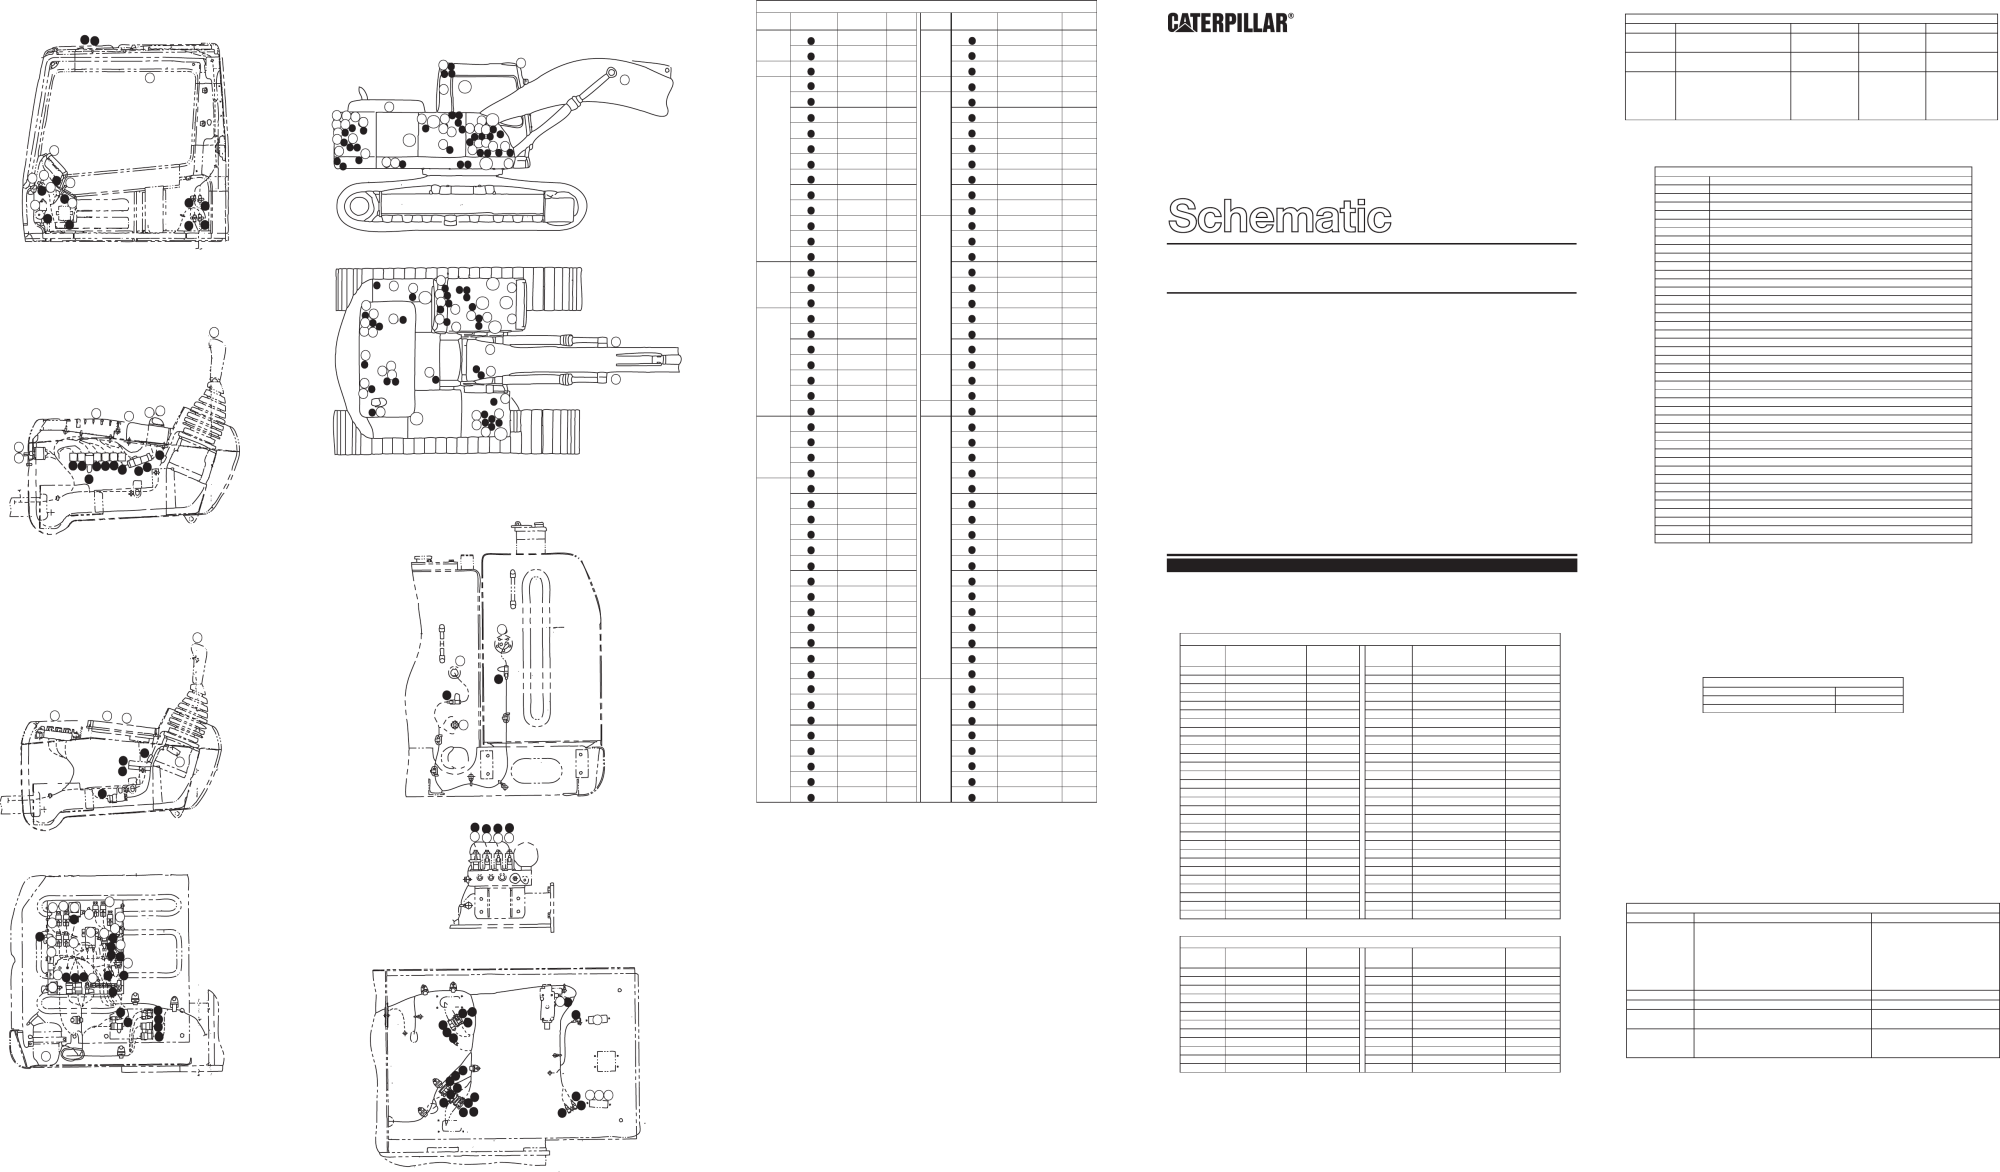 hight resolution of 320b u excavator electrical schematic akashi used in service manual senr9240